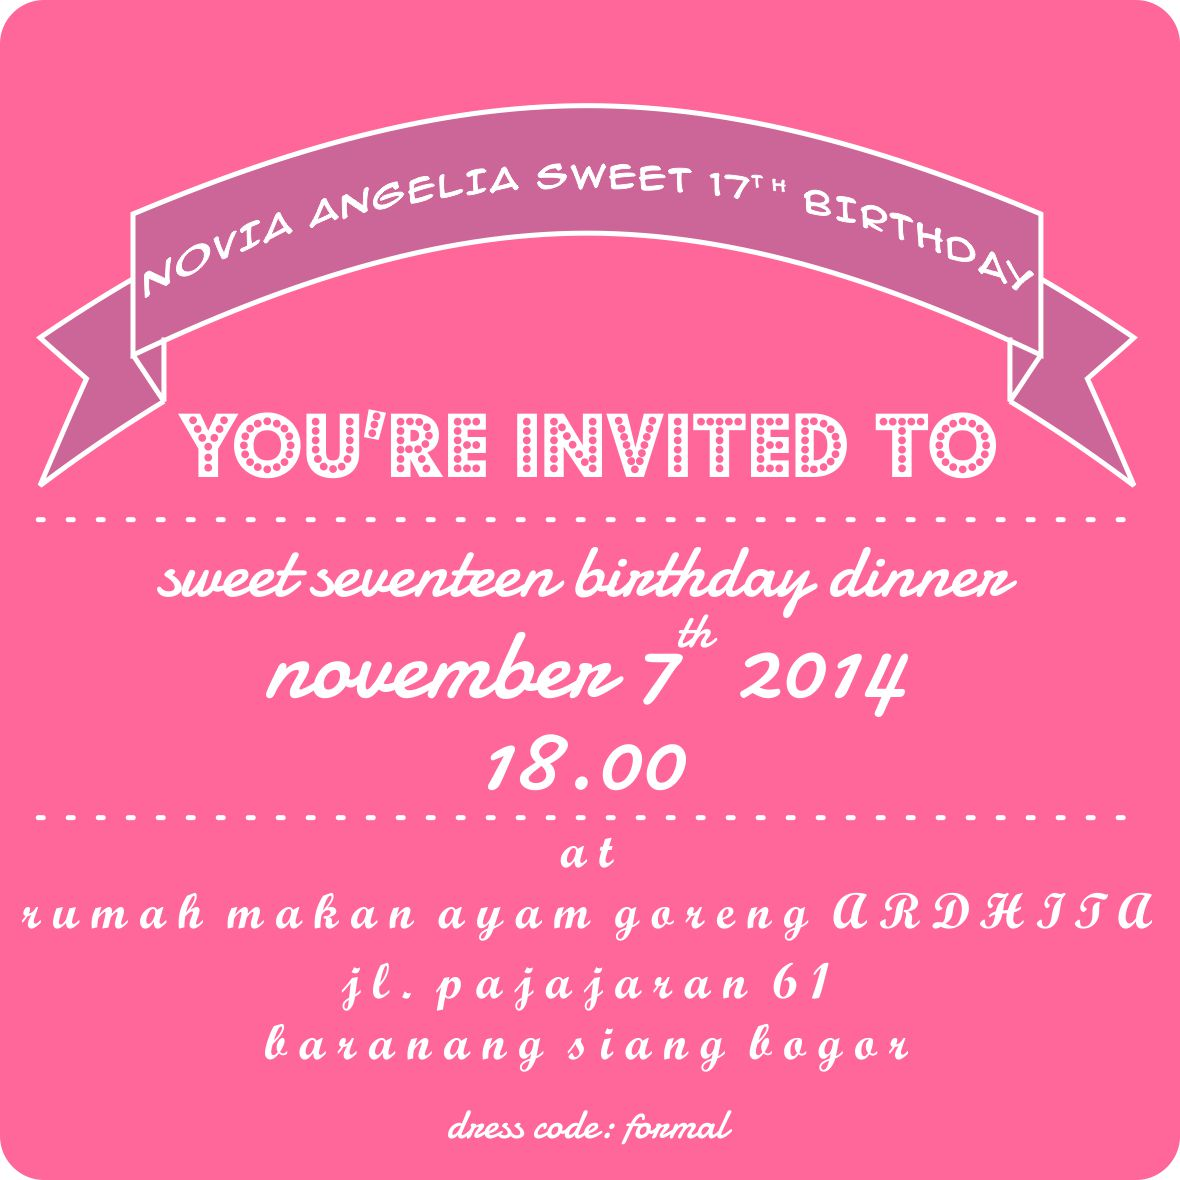 My Cousin Engagement And My Niece Birthday Party Invitations - Contoh invitation card sweet seventeen birthday party